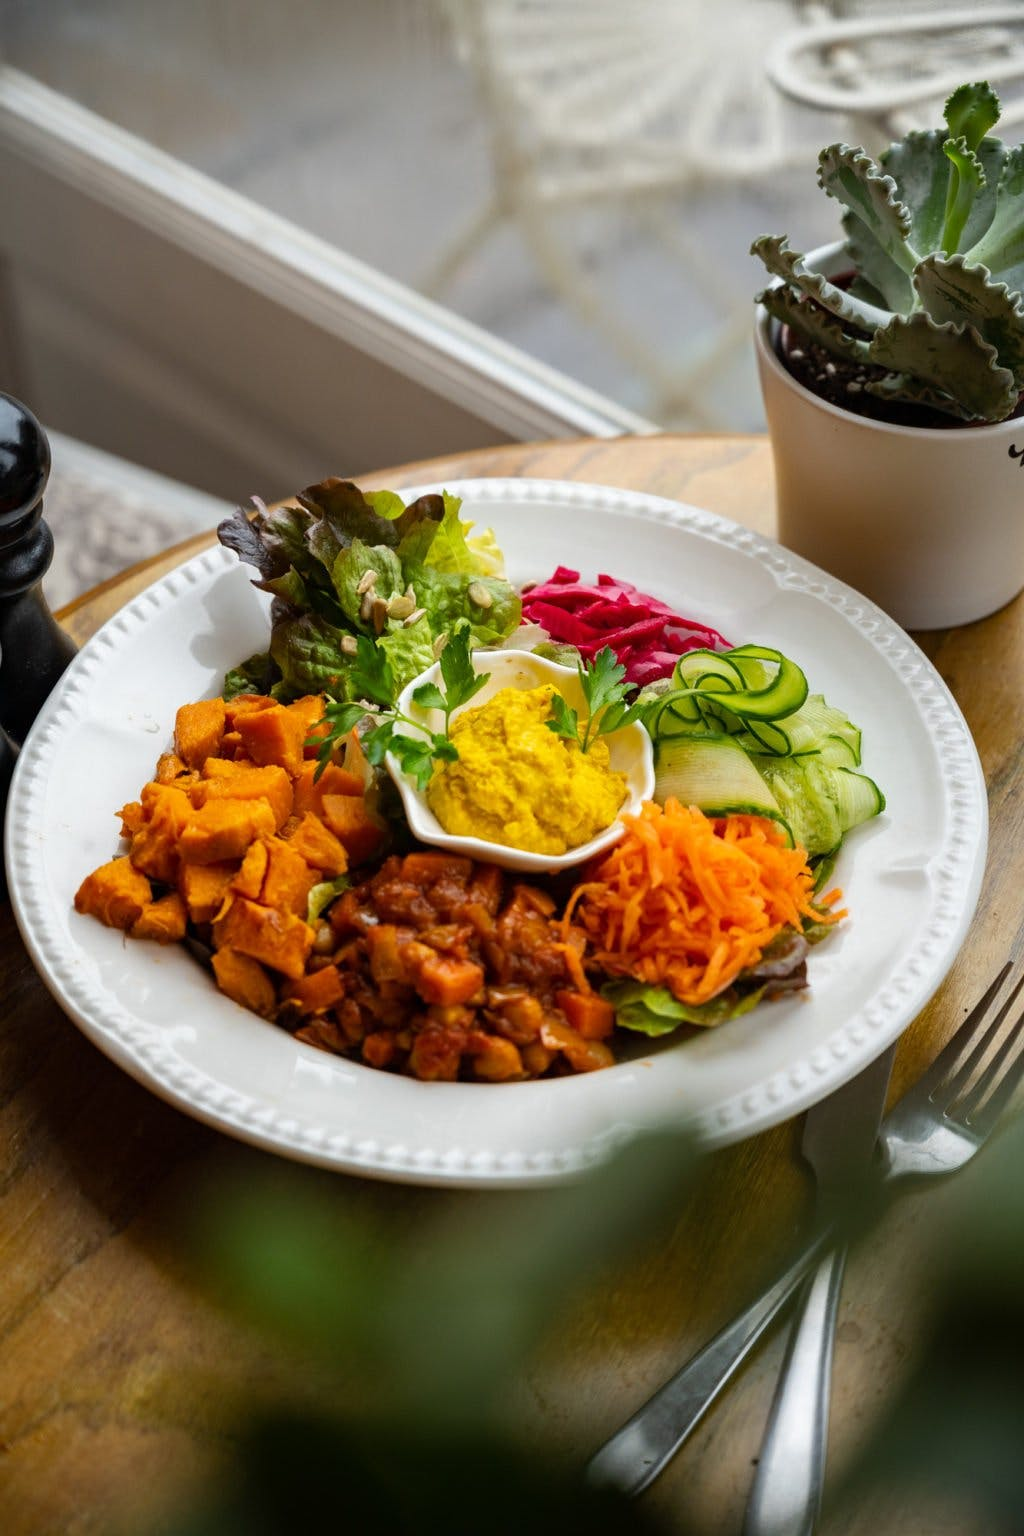 Plate of brightly coloured foods